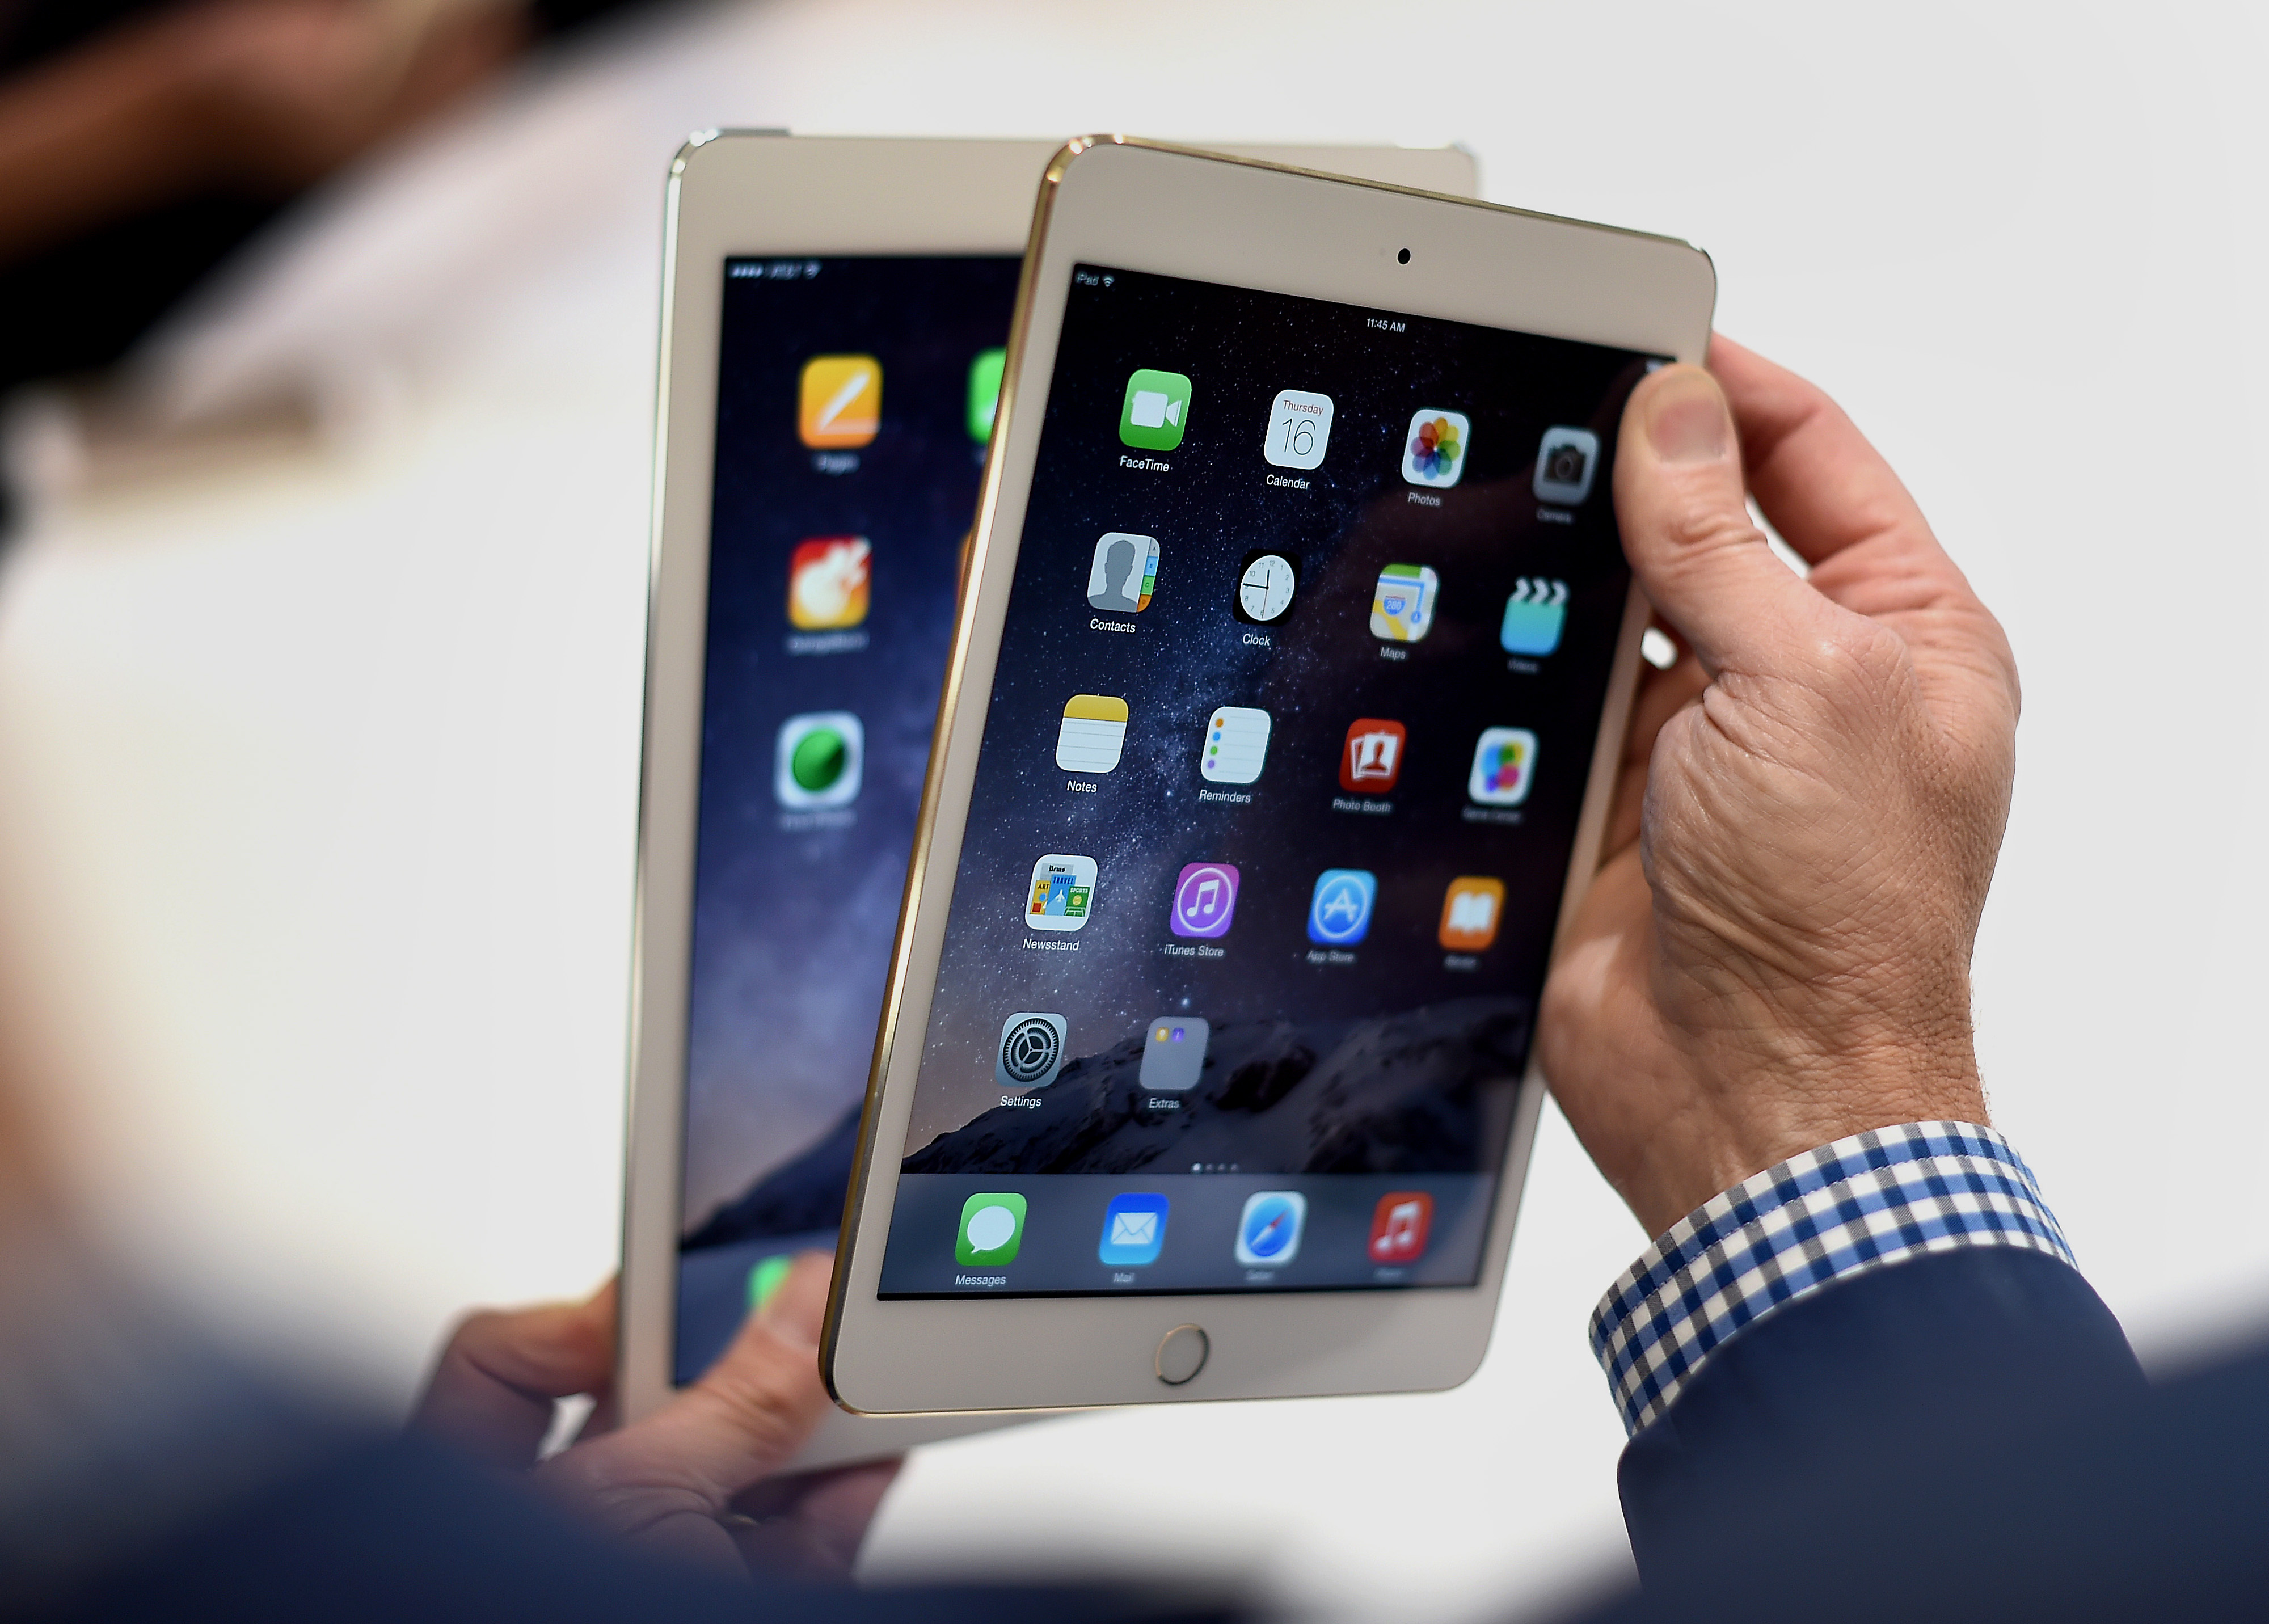 A member of the media displays an Apple Inc. iPad Mini 3, left, and iPad Air 2 for a photograph after a product announcement in Cupertino, California, U.S., on Thursday, Oct. 16, 2014.